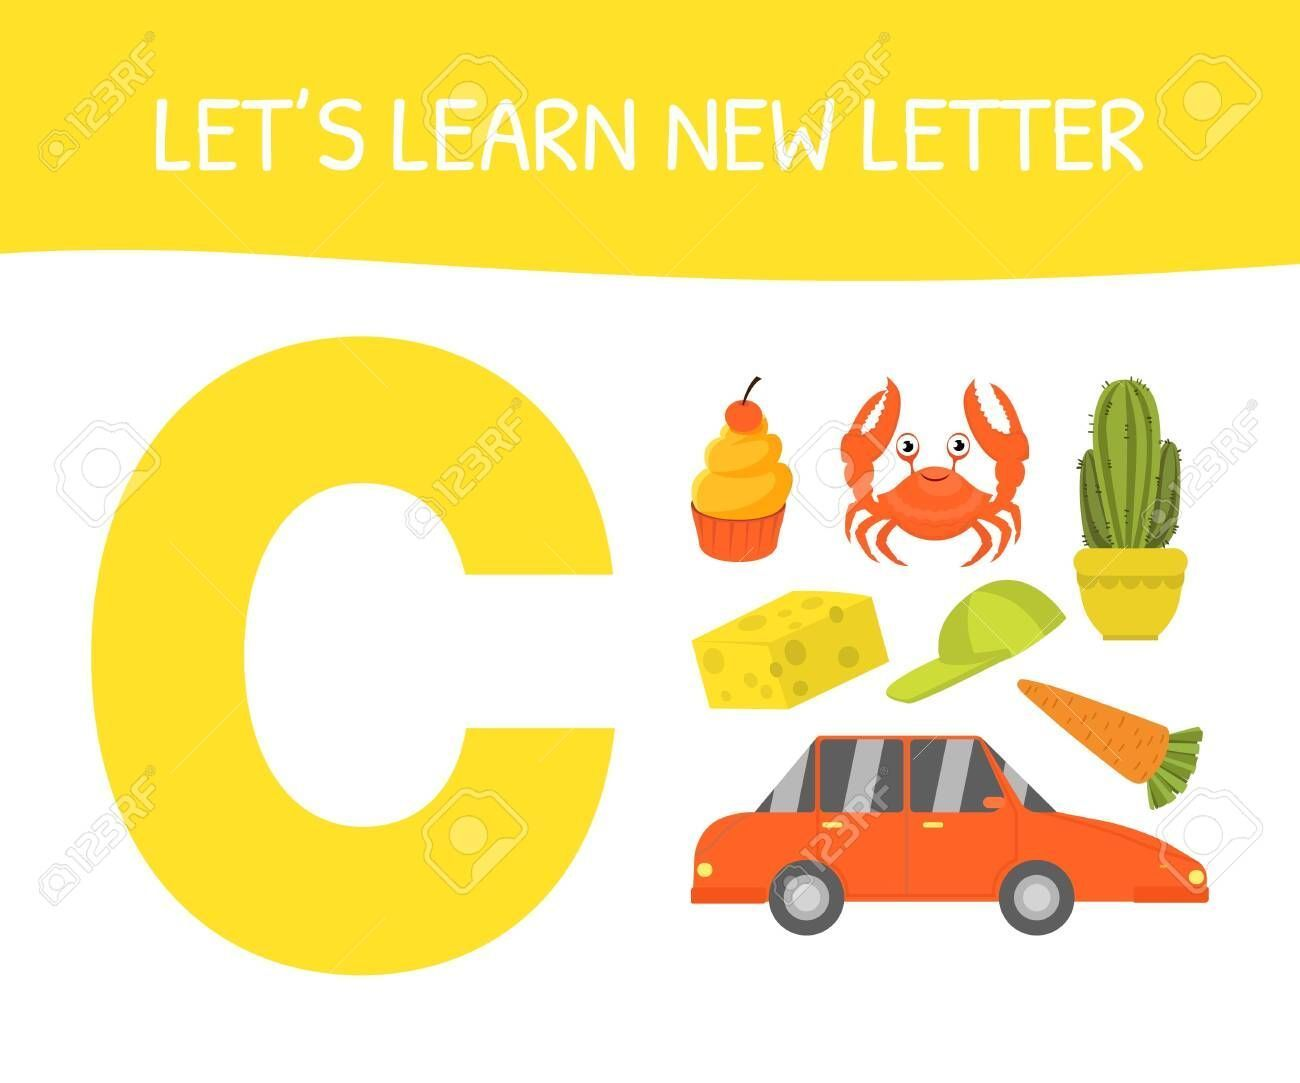 Illustration Educational Preschool Cupcake Cheese Carrot Cactus Letter Vector Learn Affi Lets Crab Preschool Kids Education Logo Educational Games [ 1083 x 1300 Pixel ]